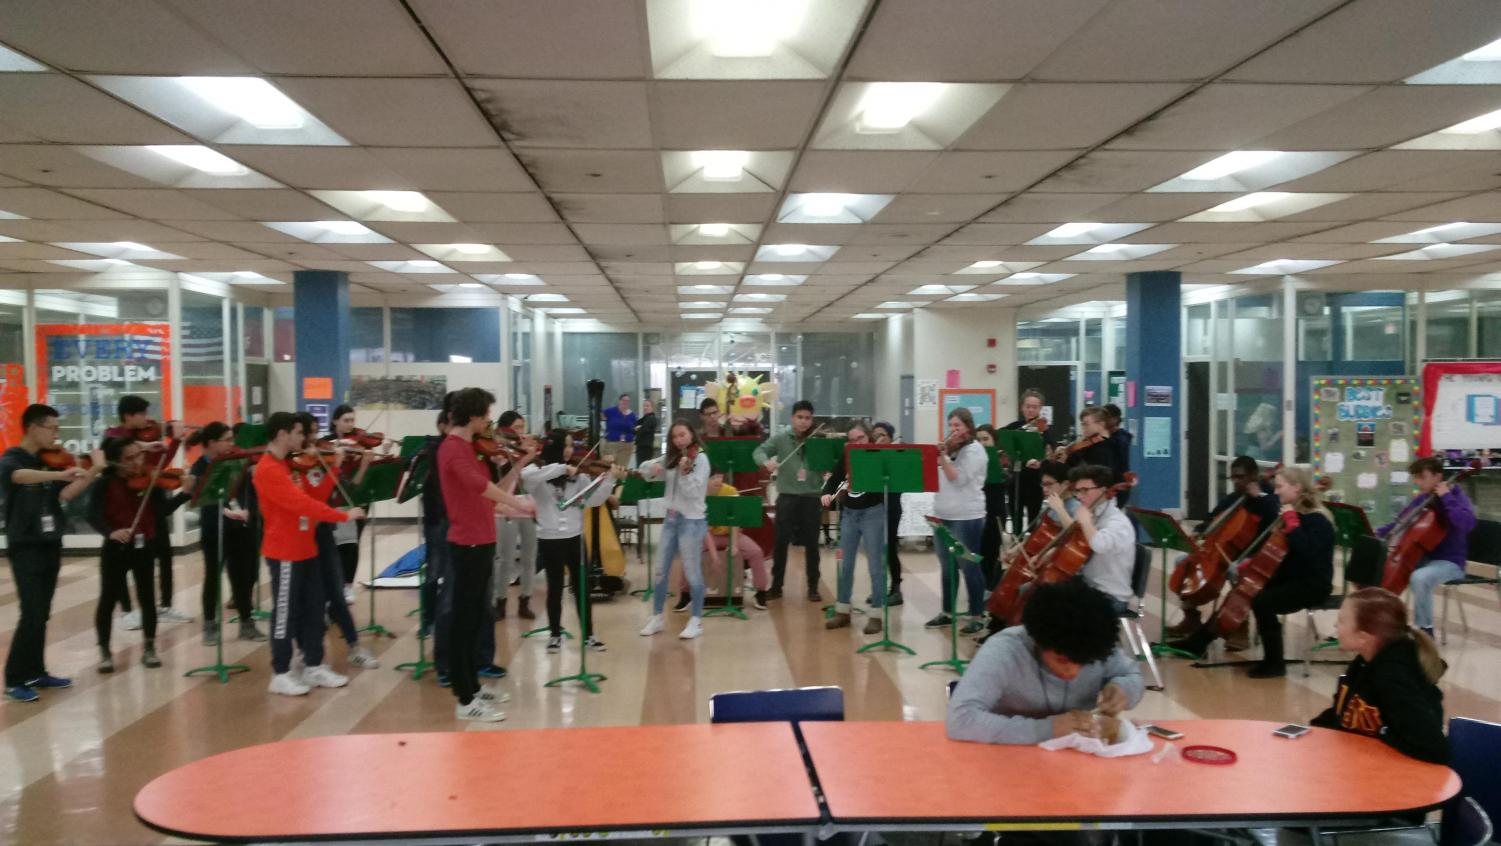 WYMHS Chamber Orchestra performs for Blue House during 6th period as part of performing arts week